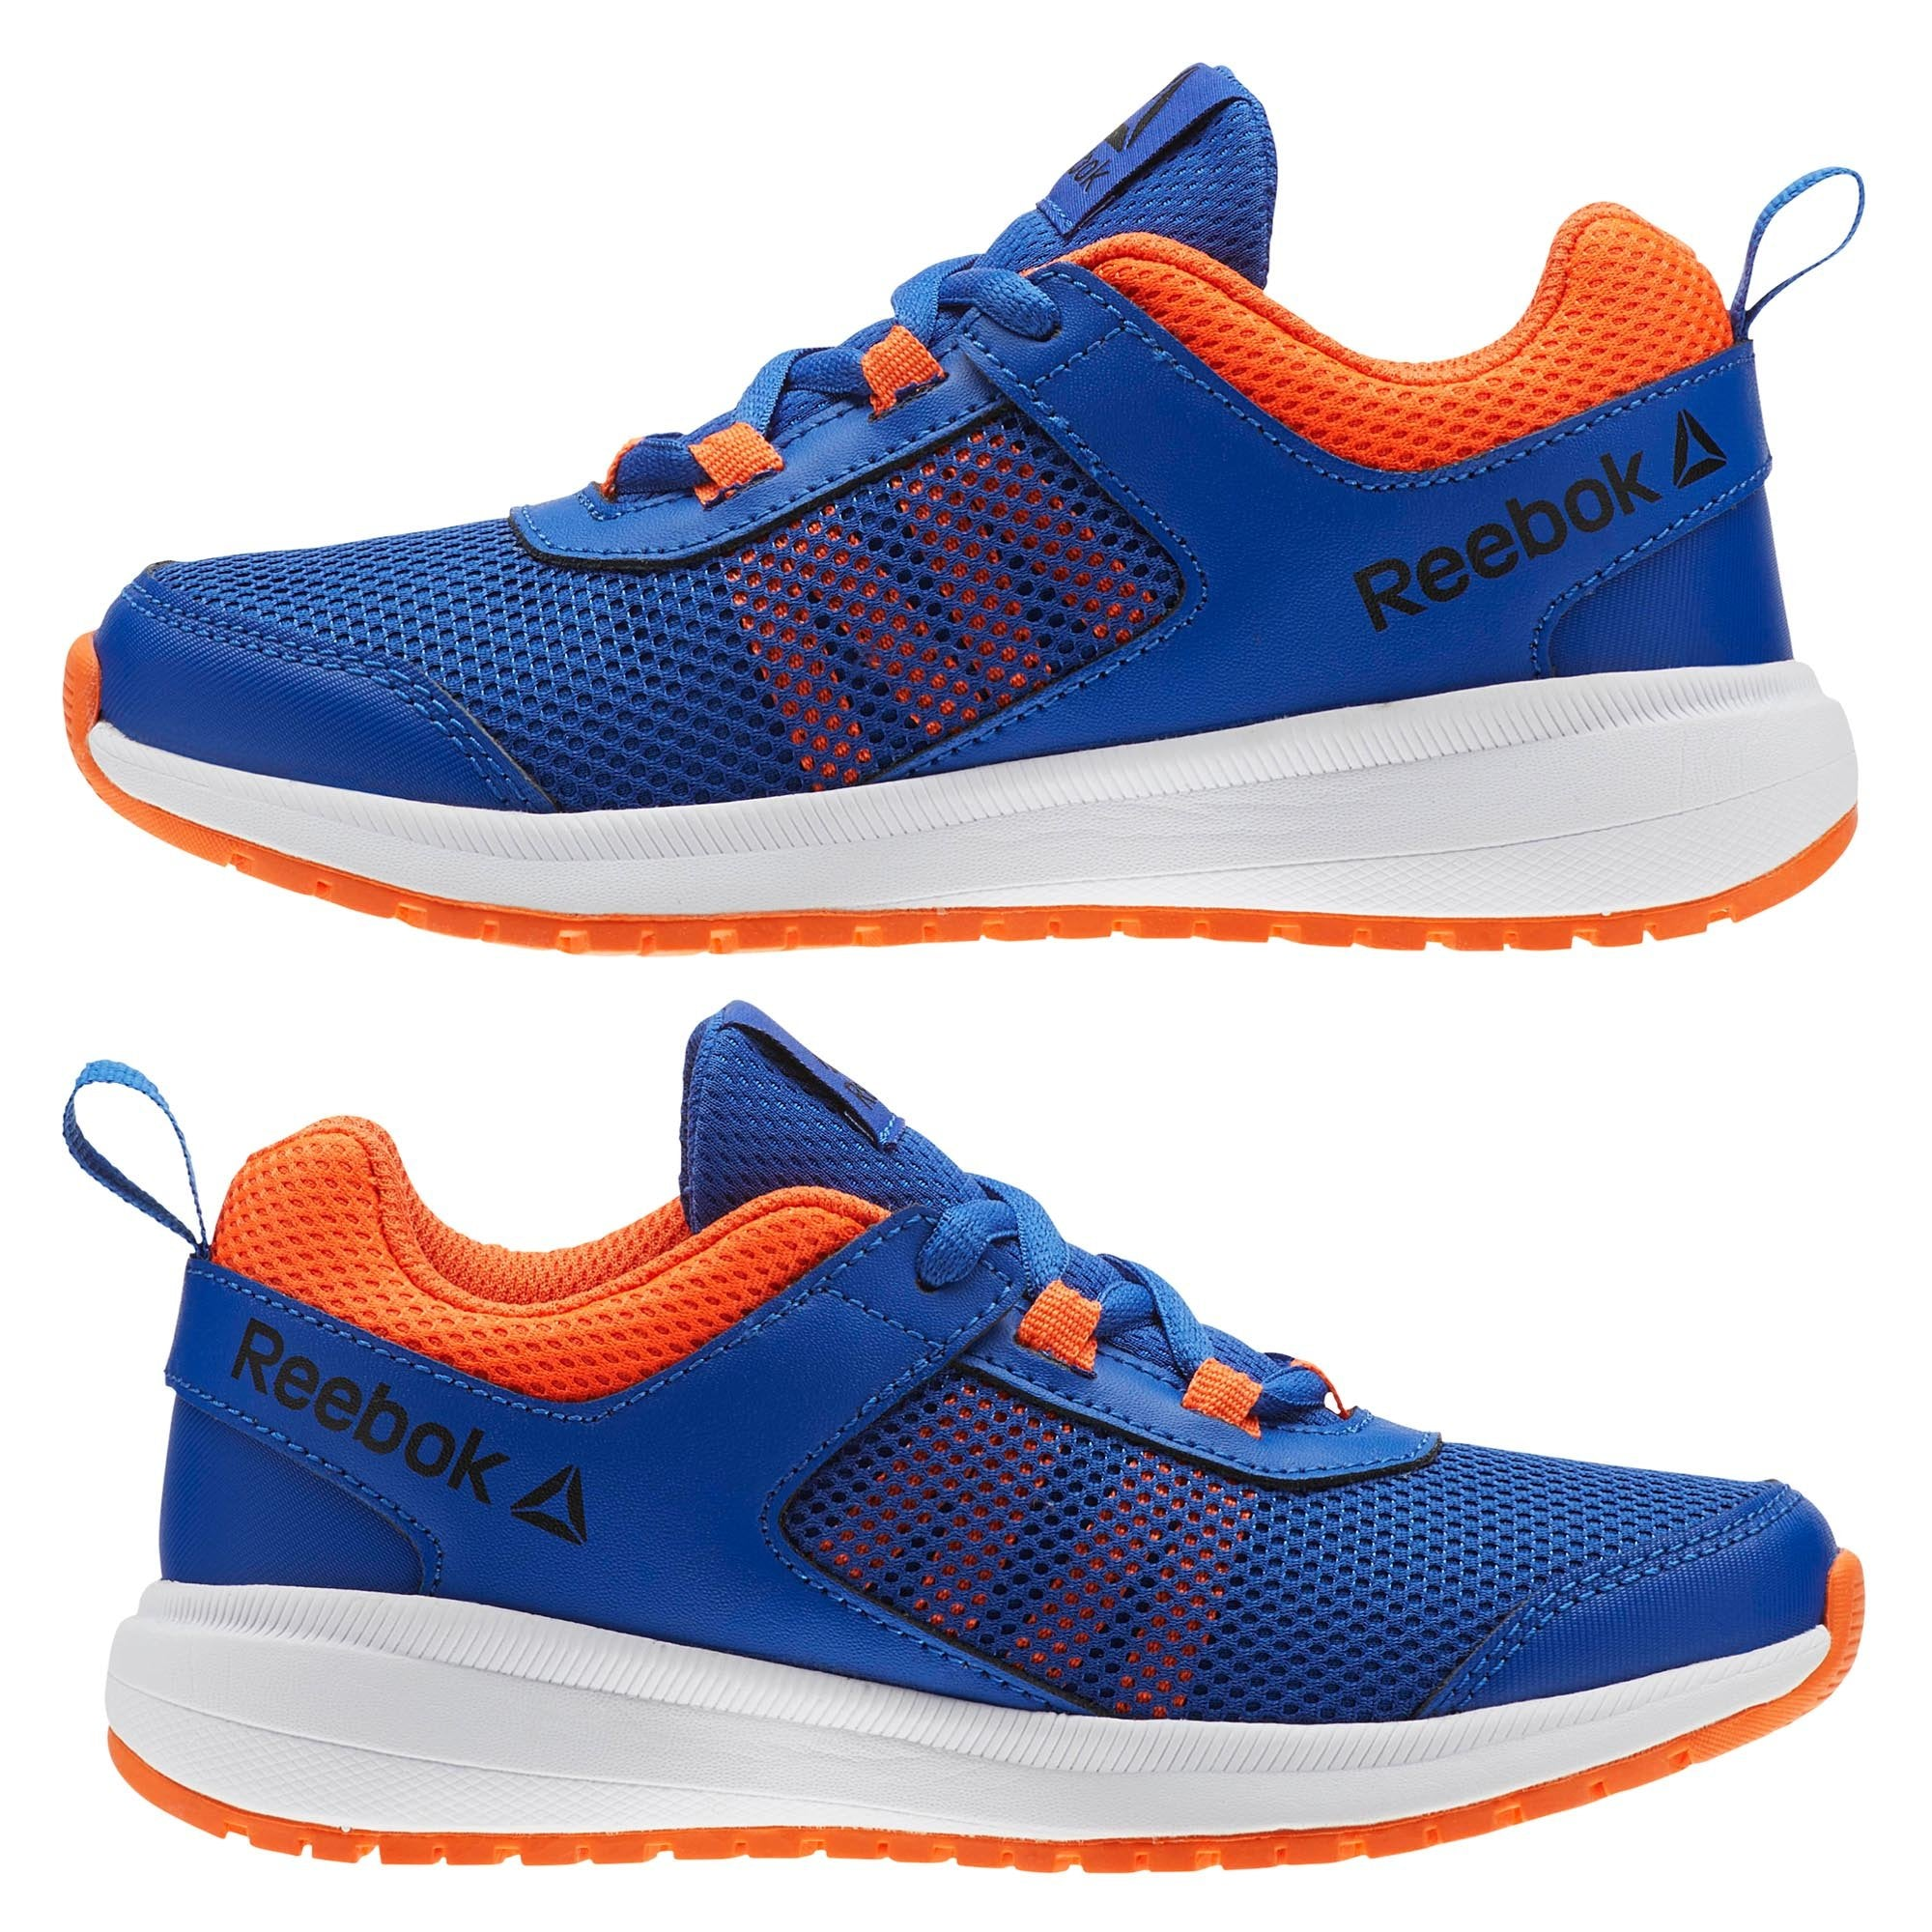 0b750230cf872 Buy Reebok Boys Road Supreme Running Shoes